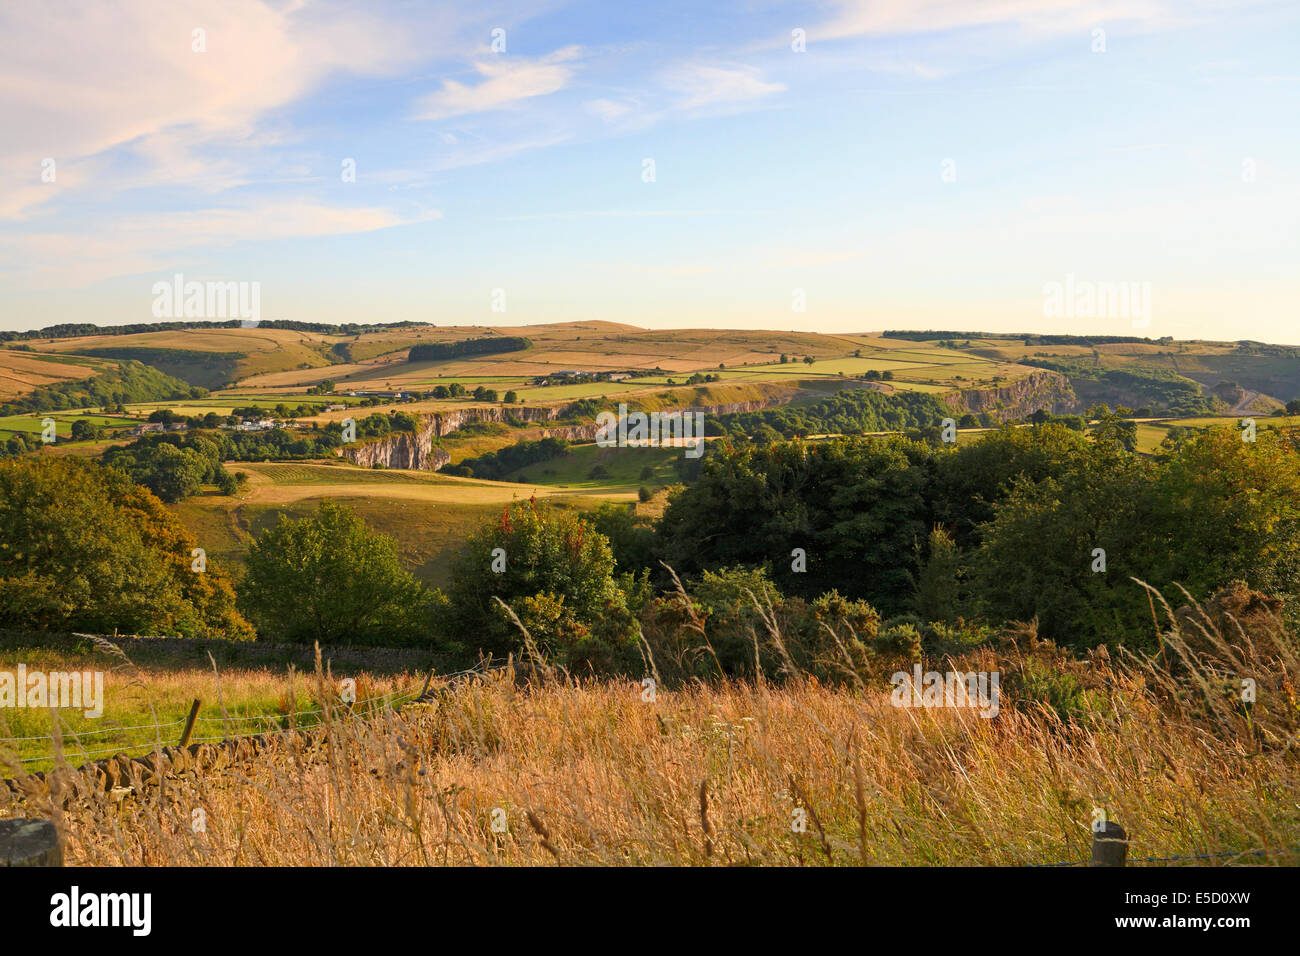 Quarrys at Stoney Middleton from Eyam, Derbyshire, Peak District National Park, England, UK. - Stock Image